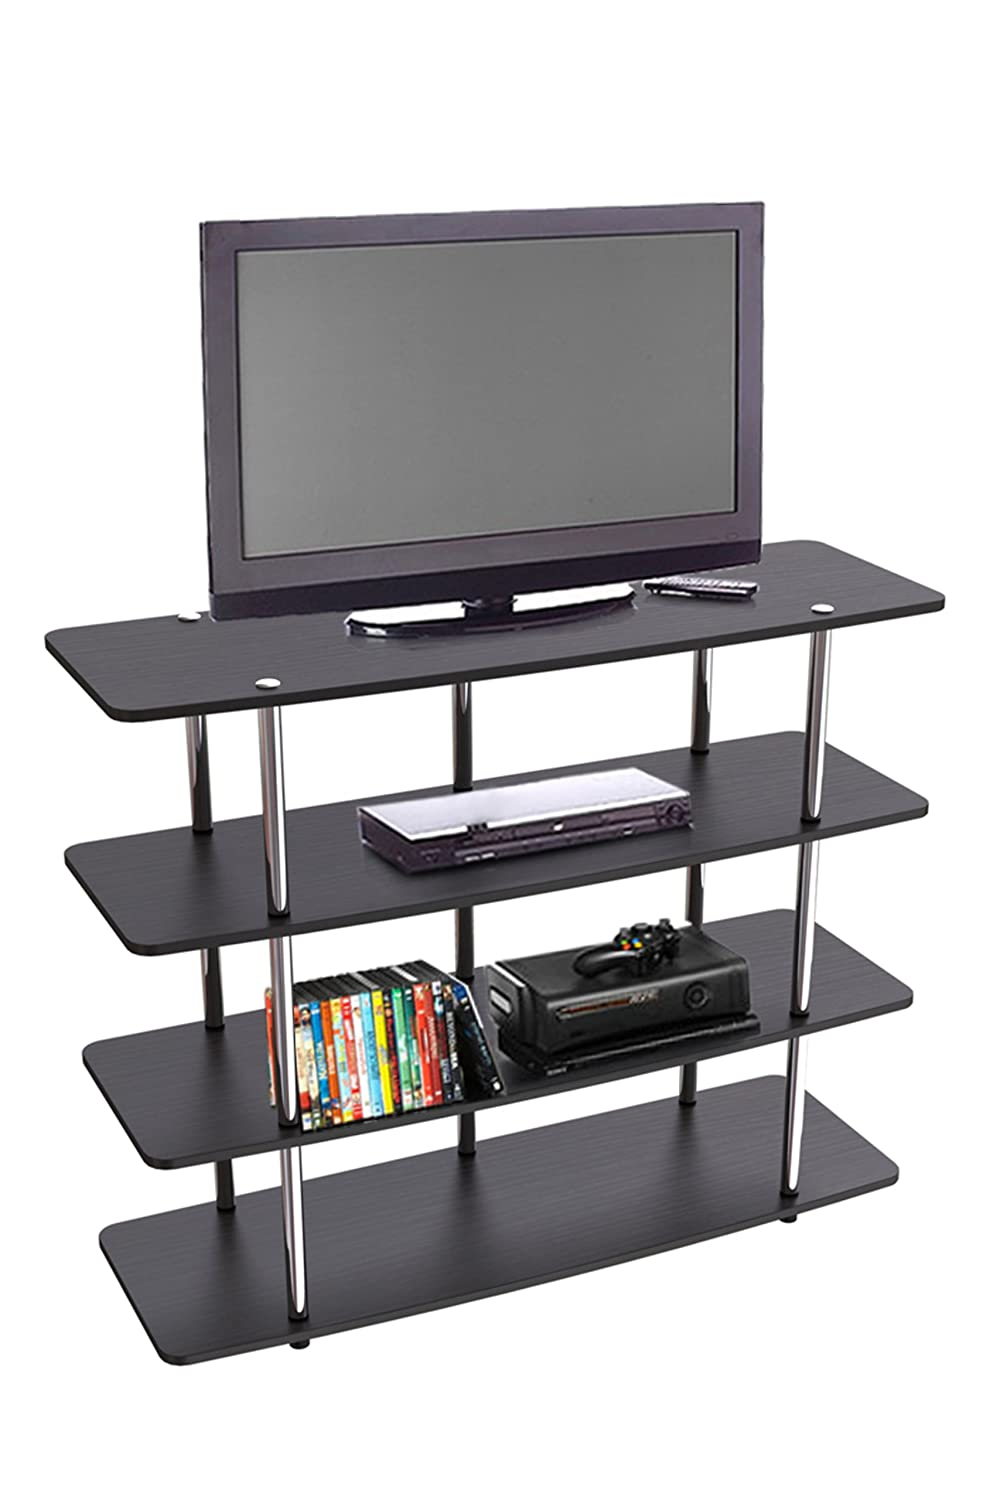 Modern tv stand entertainment center console media home theater furniture shelf ebay Home theater furniture amazon